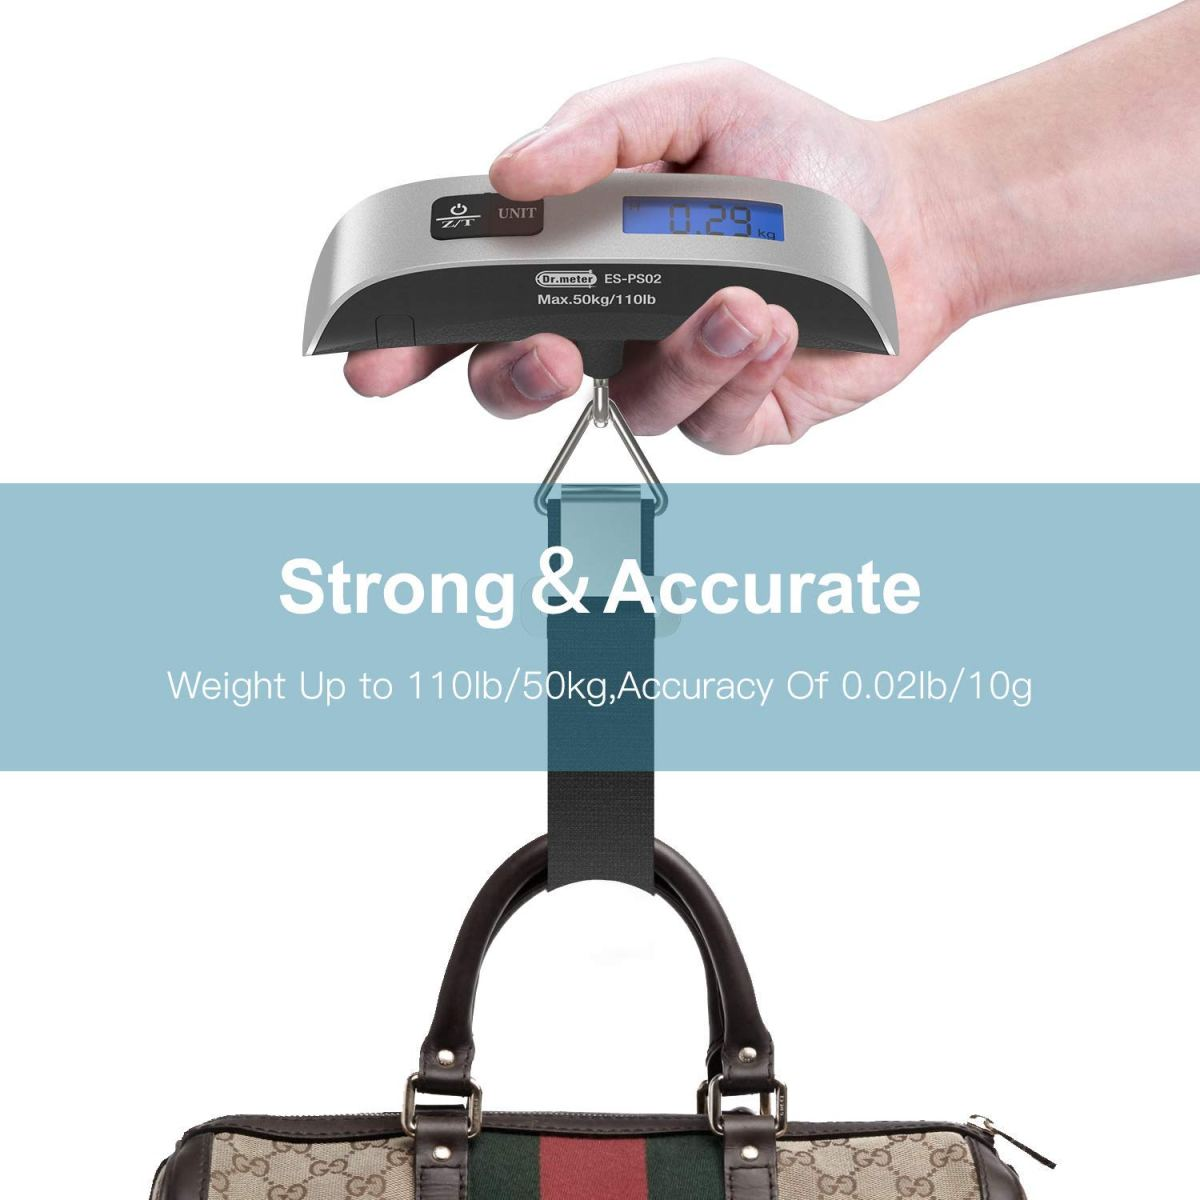 Amazon : LCD Display Luggage Scale Just $3.40 W/Code + Lightening Deal (As of 12/14/2018 1.16 PM CST)